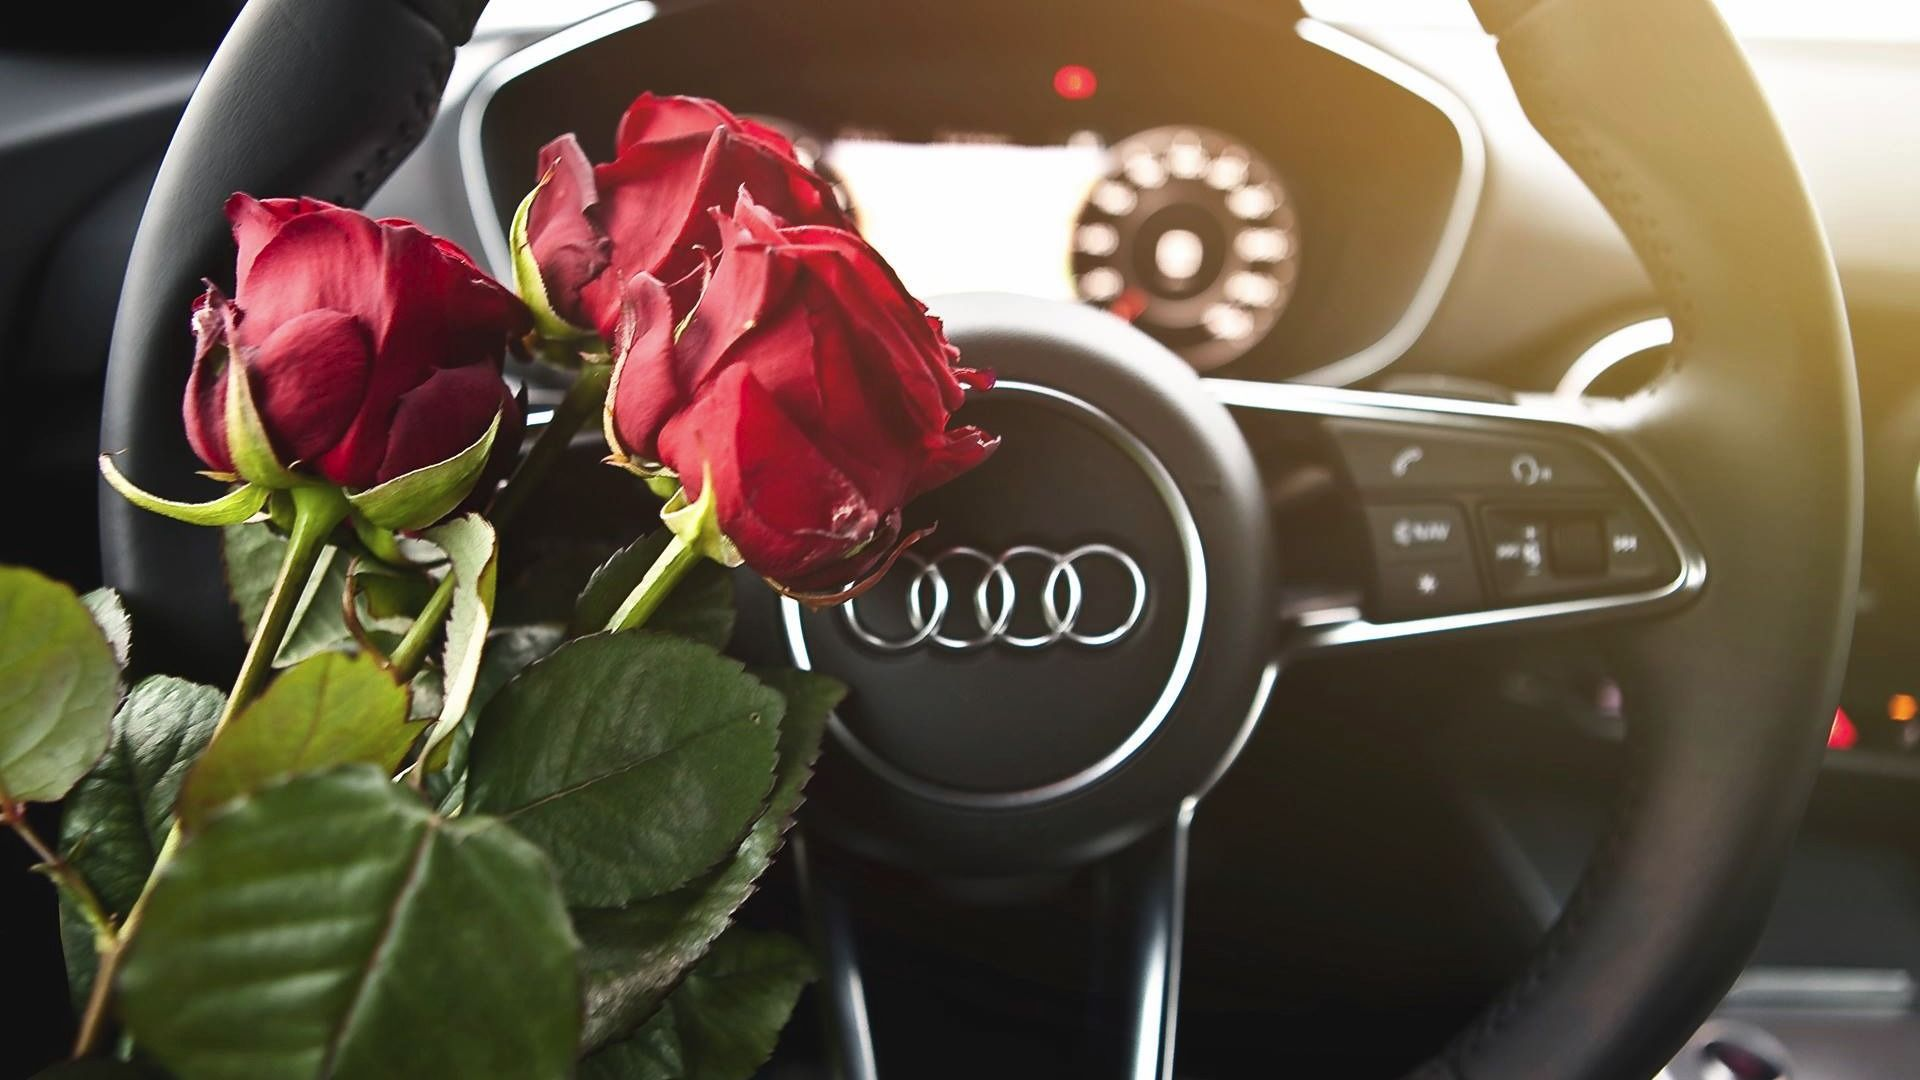 Ideas to Surprise Your Girlfriend with Romantic Valentine